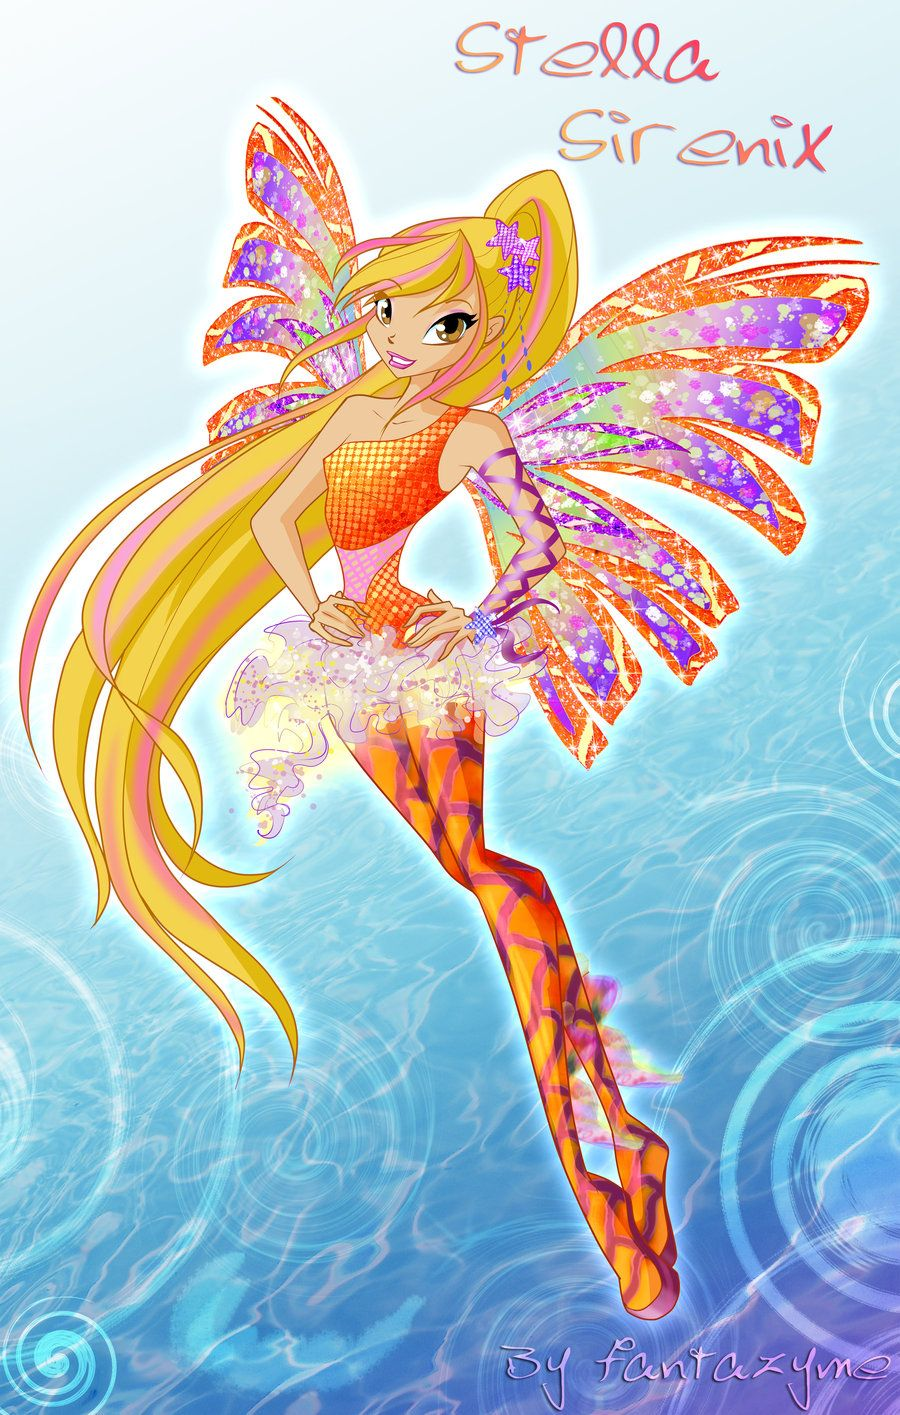 Pin by una di noi winx on fifth season fanart pinterest for Stalla ovini dwg